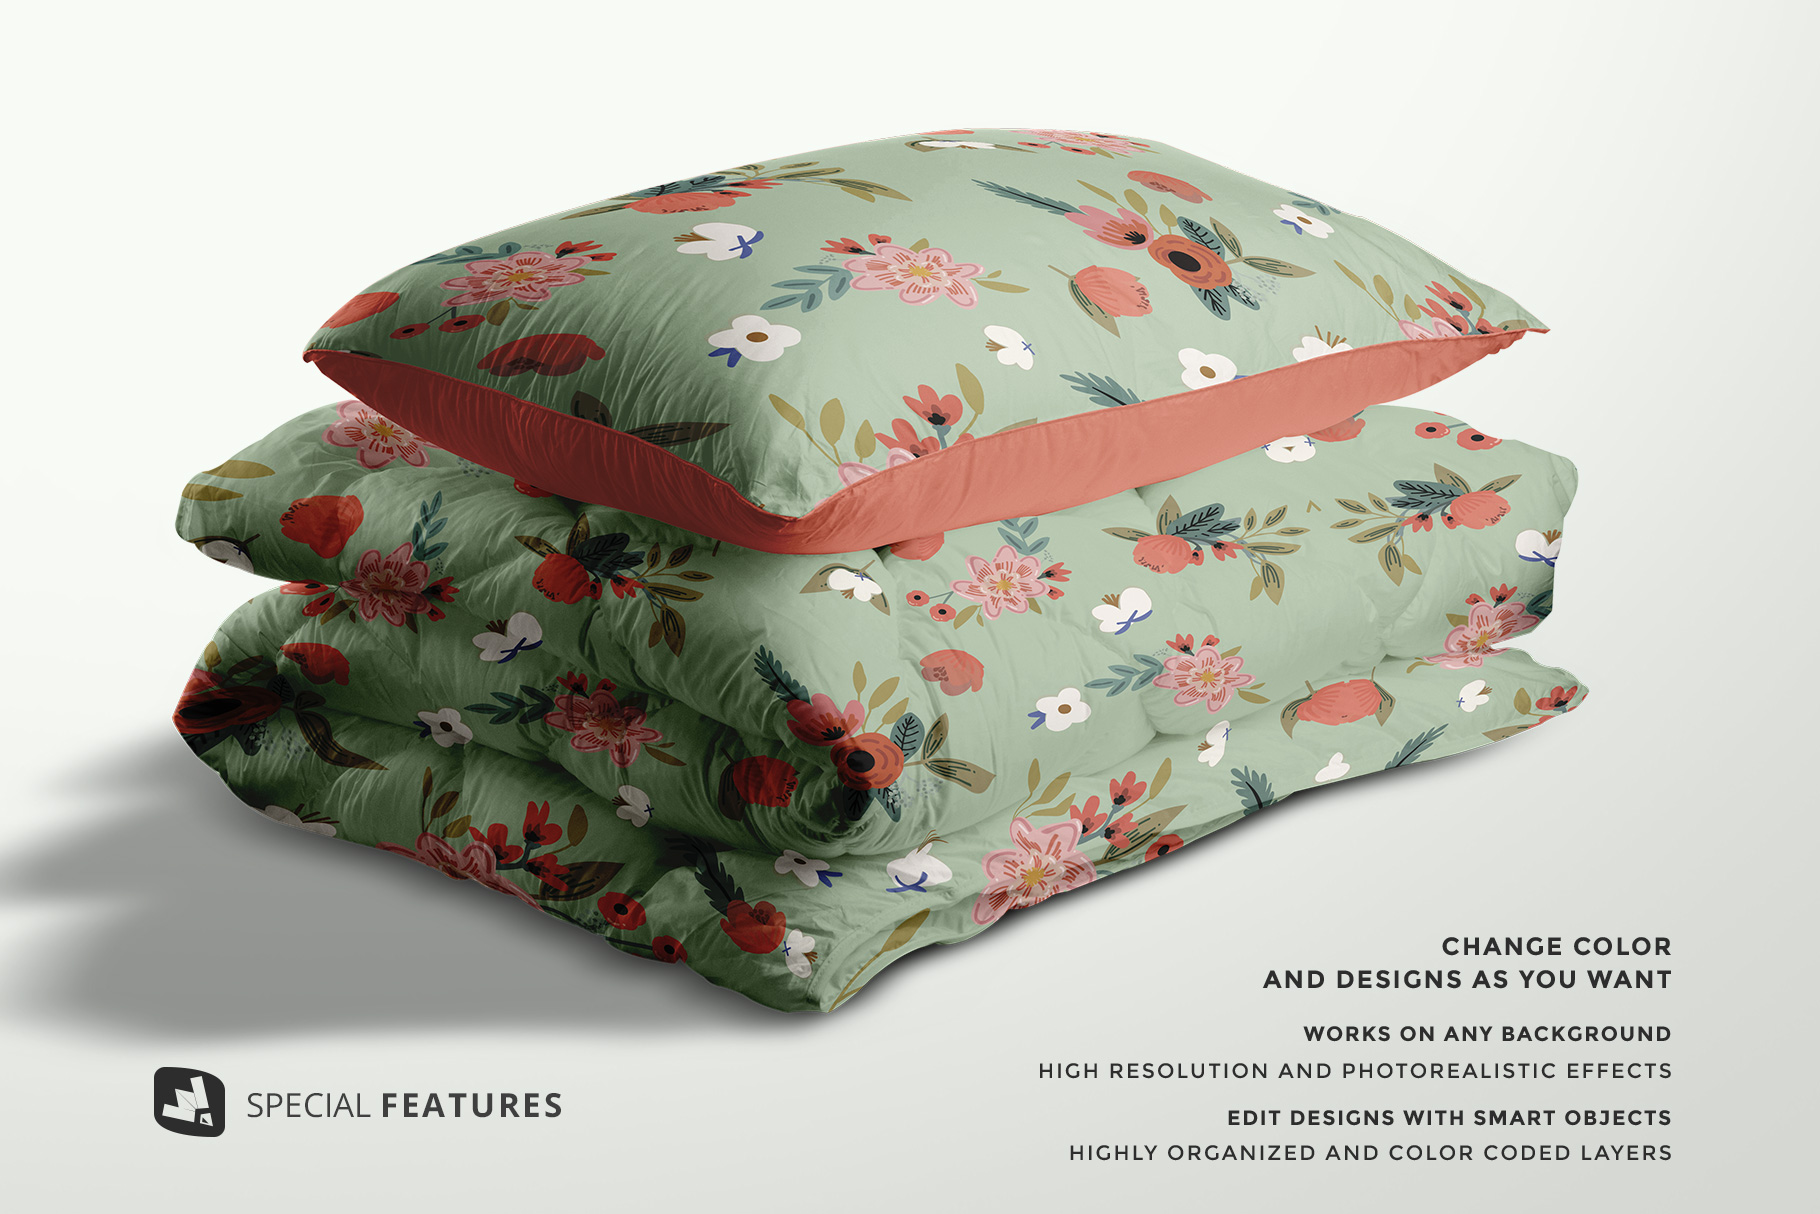 special features of the duvet & pillow case mockup